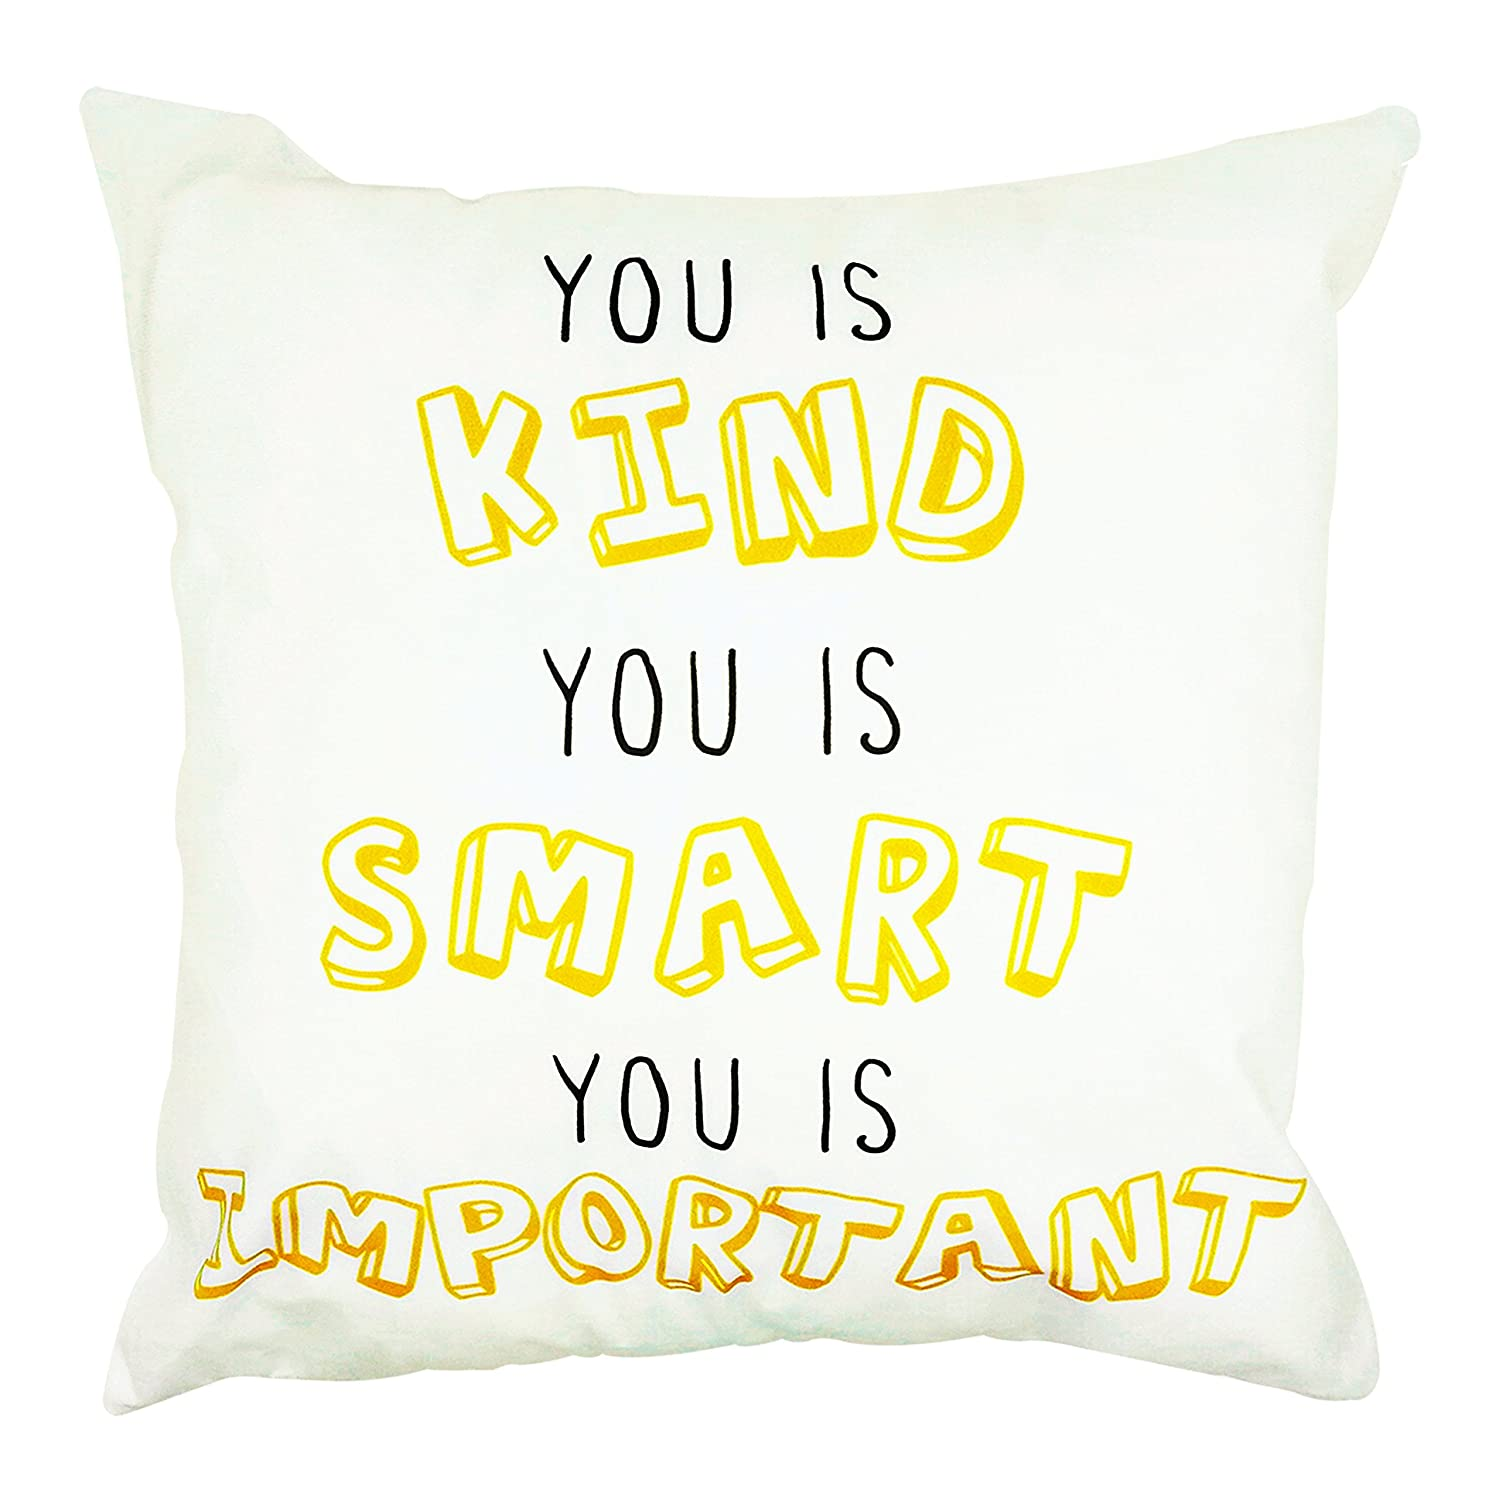 Amazoncom Arundeal 18 X 18 Inch Polyester Square Throw Pillow